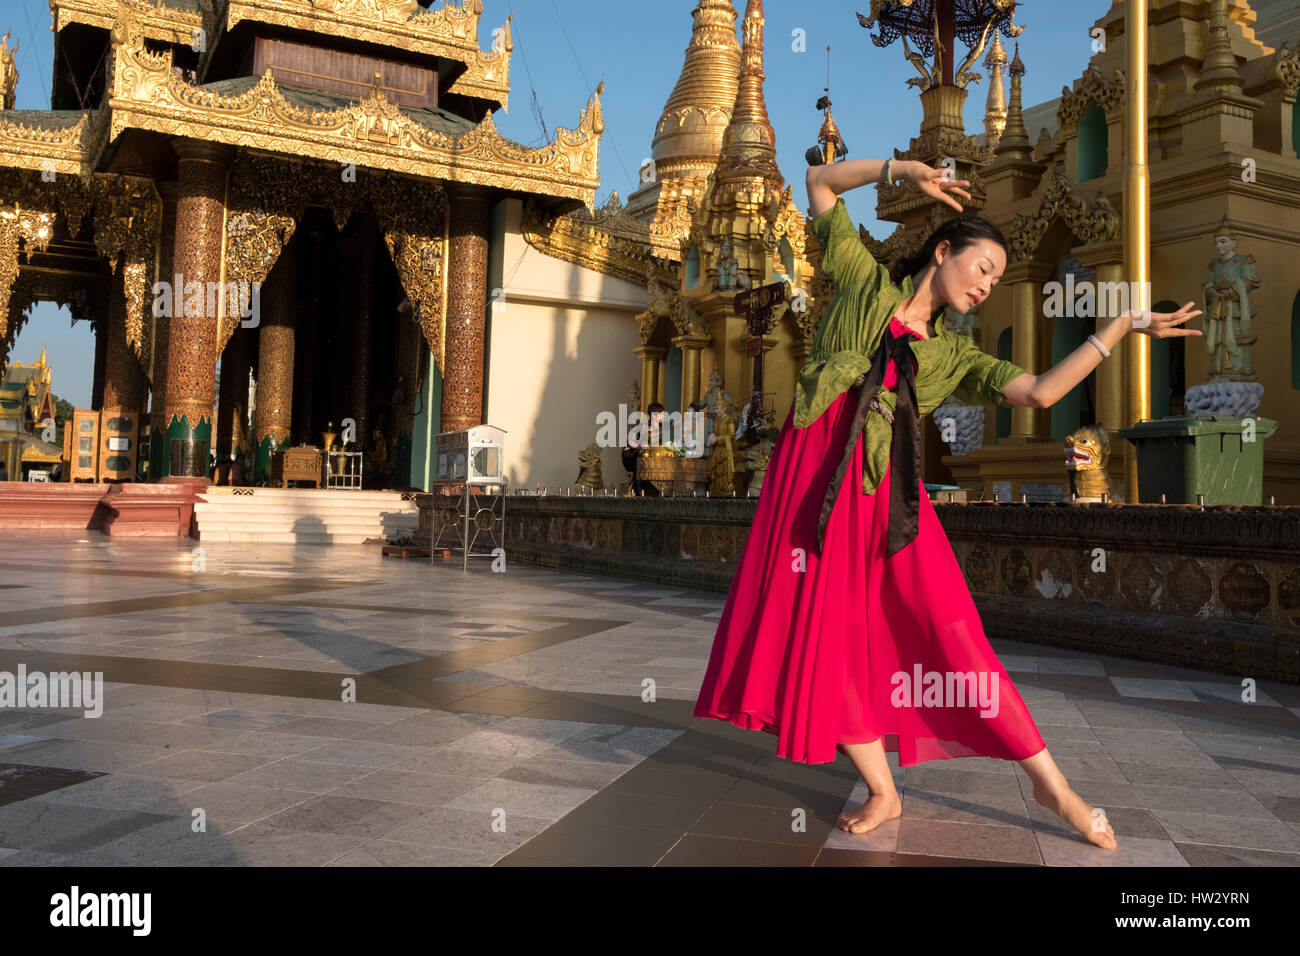 A woman dances at the Shwedagon Pagoda in Yangon, Yangon Region, Myanmar - Stock Image